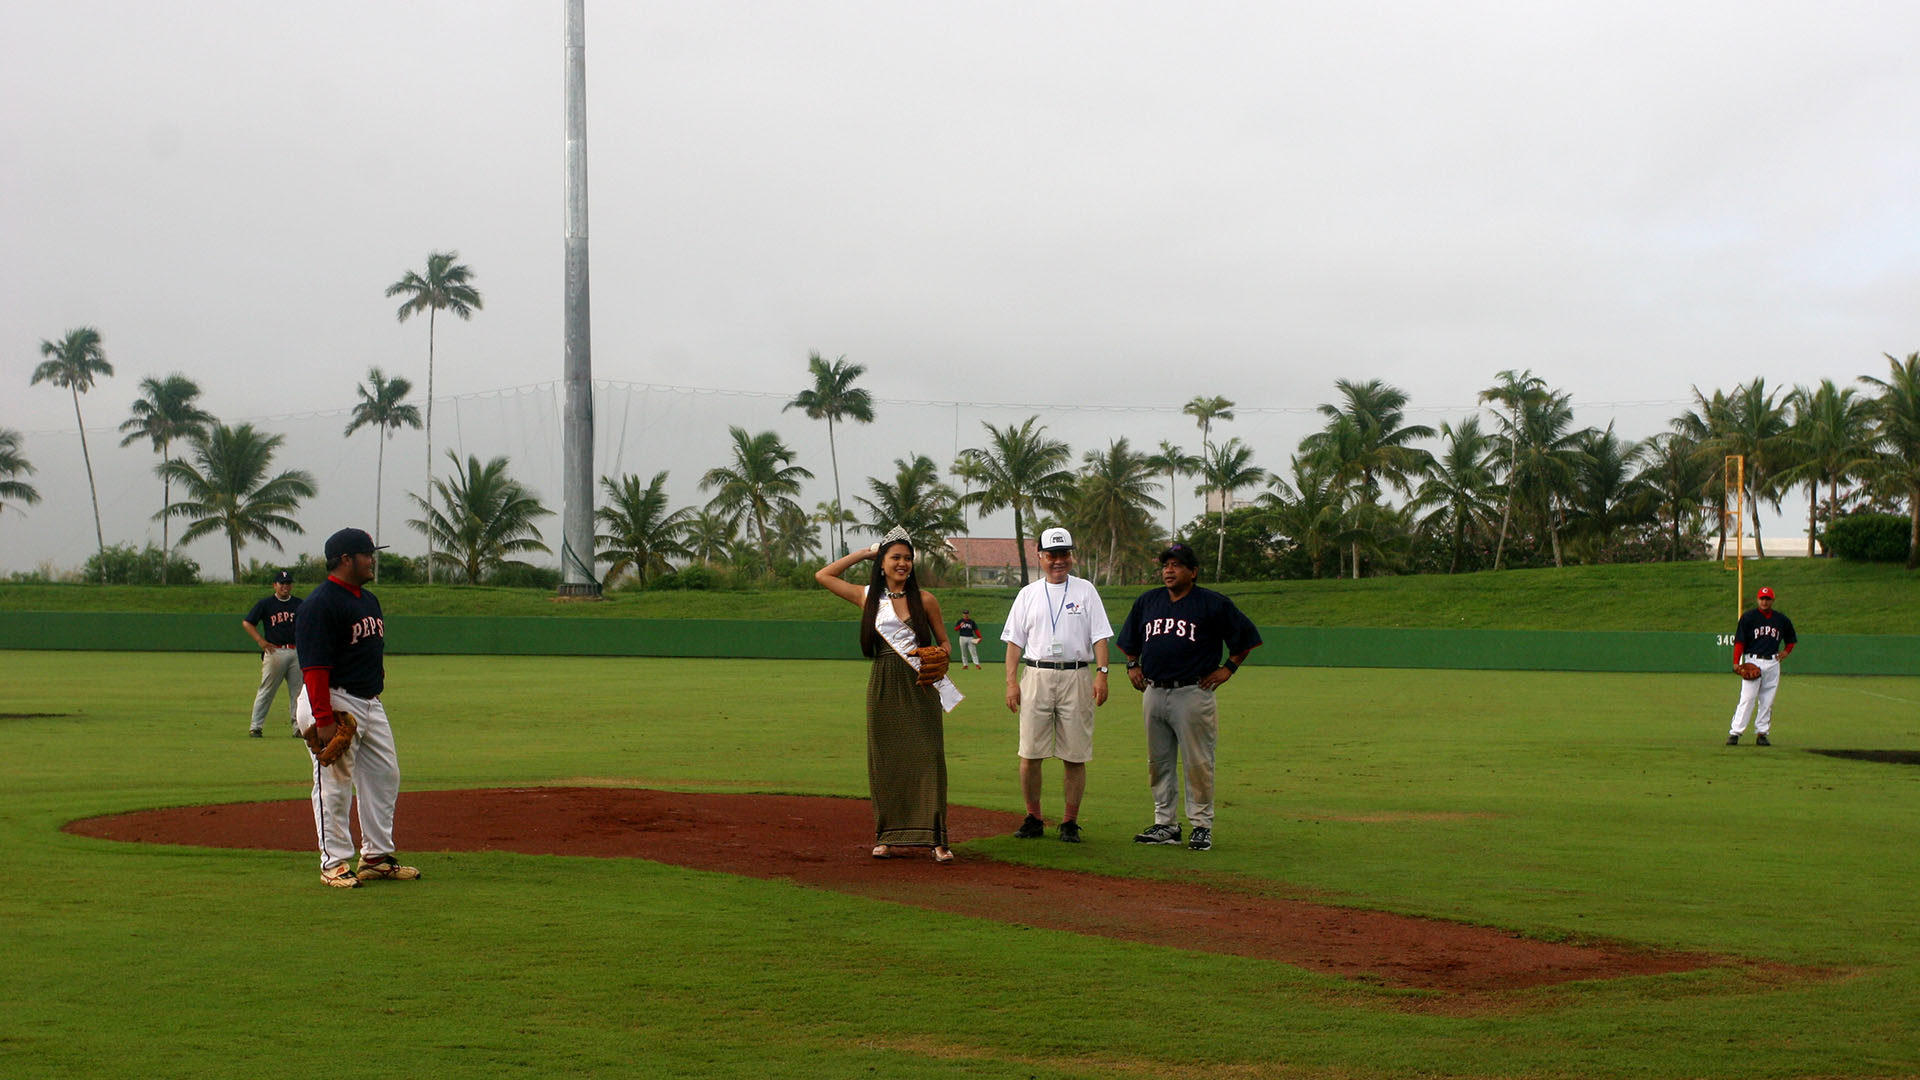 Ceremonial first pitch by Miss Guam (December 1, 2007)